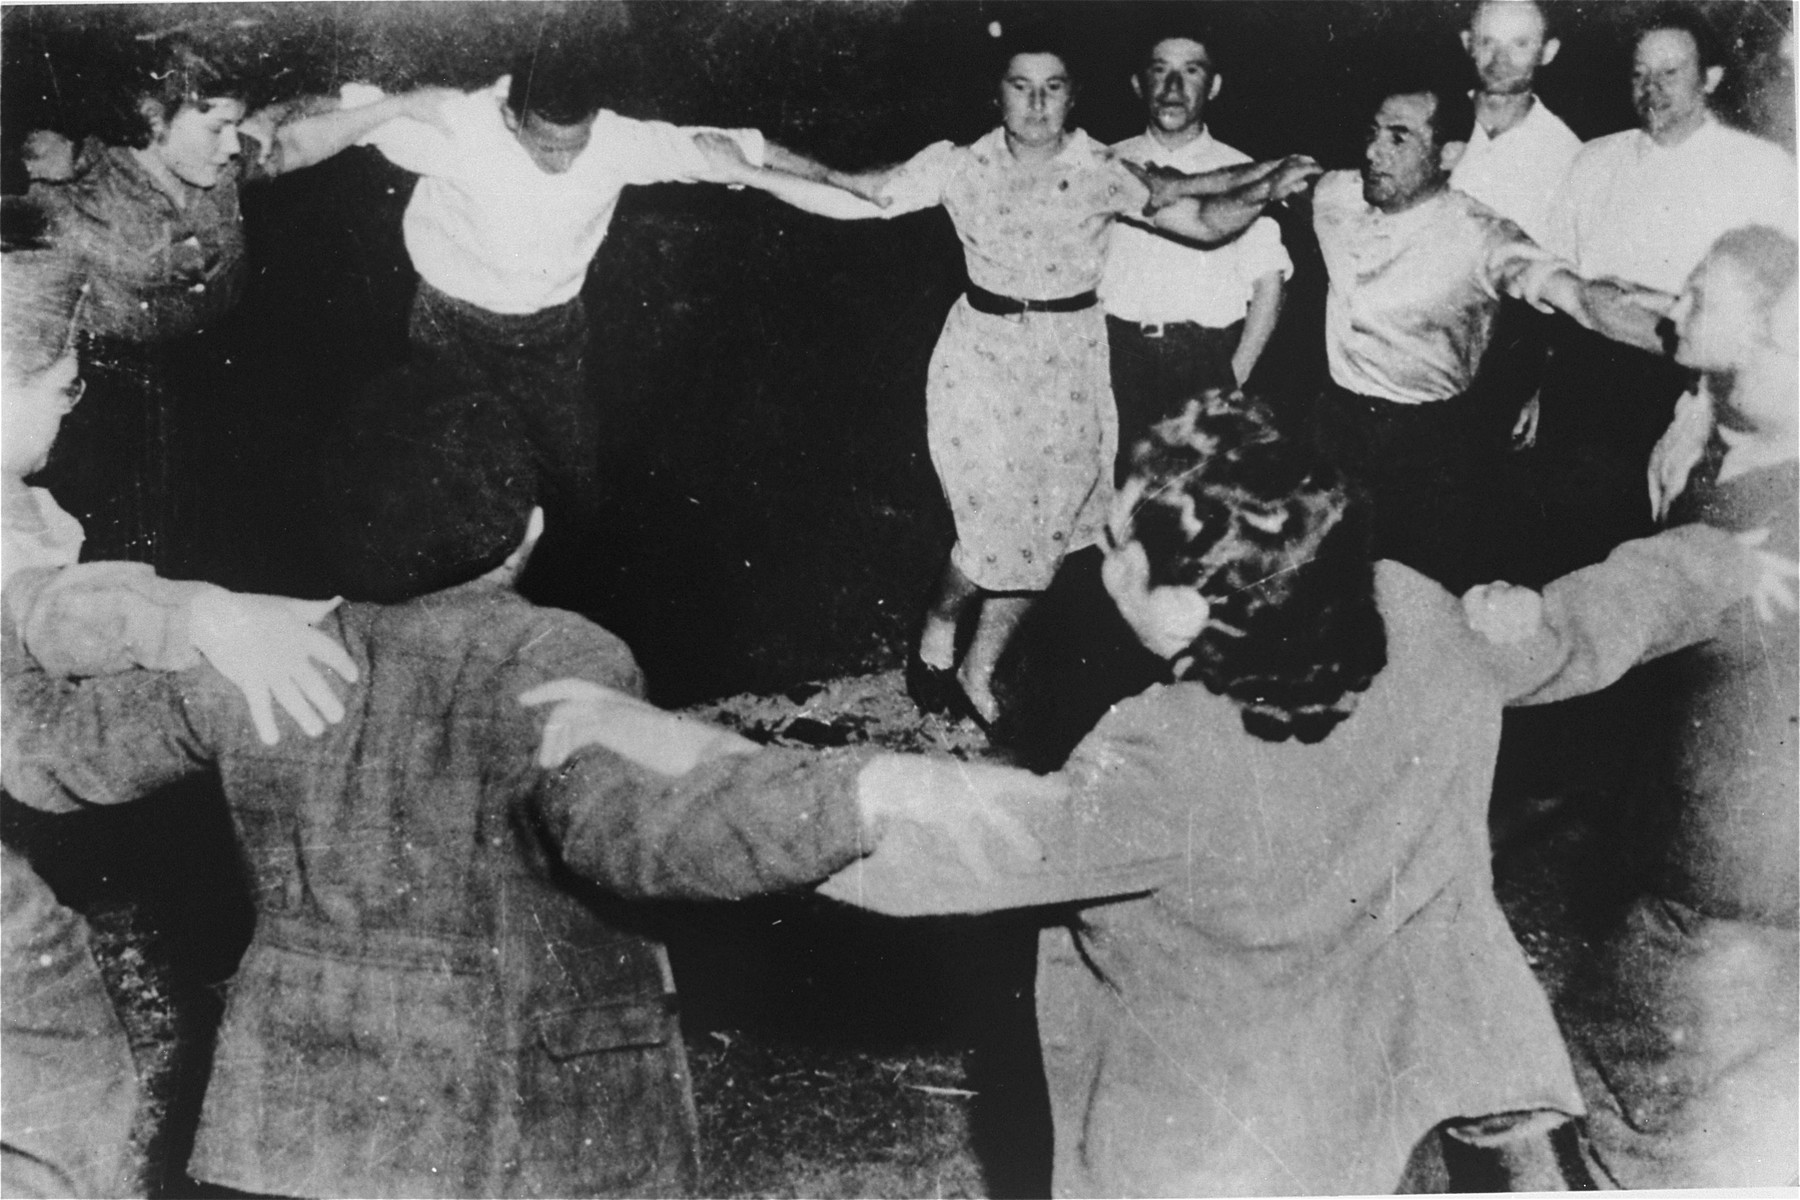 Members of the Kibbutz Buchenwald hachshara (Zionist collective) dance the hora.